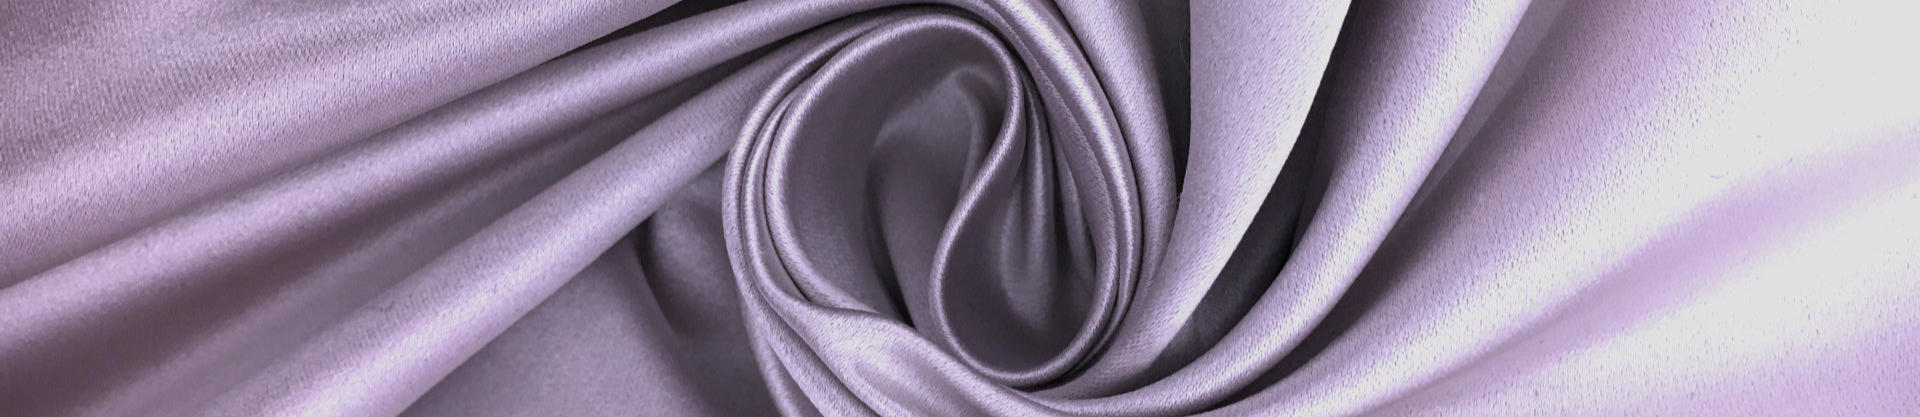 Manufacture of elastic and rigid knitted fabrics